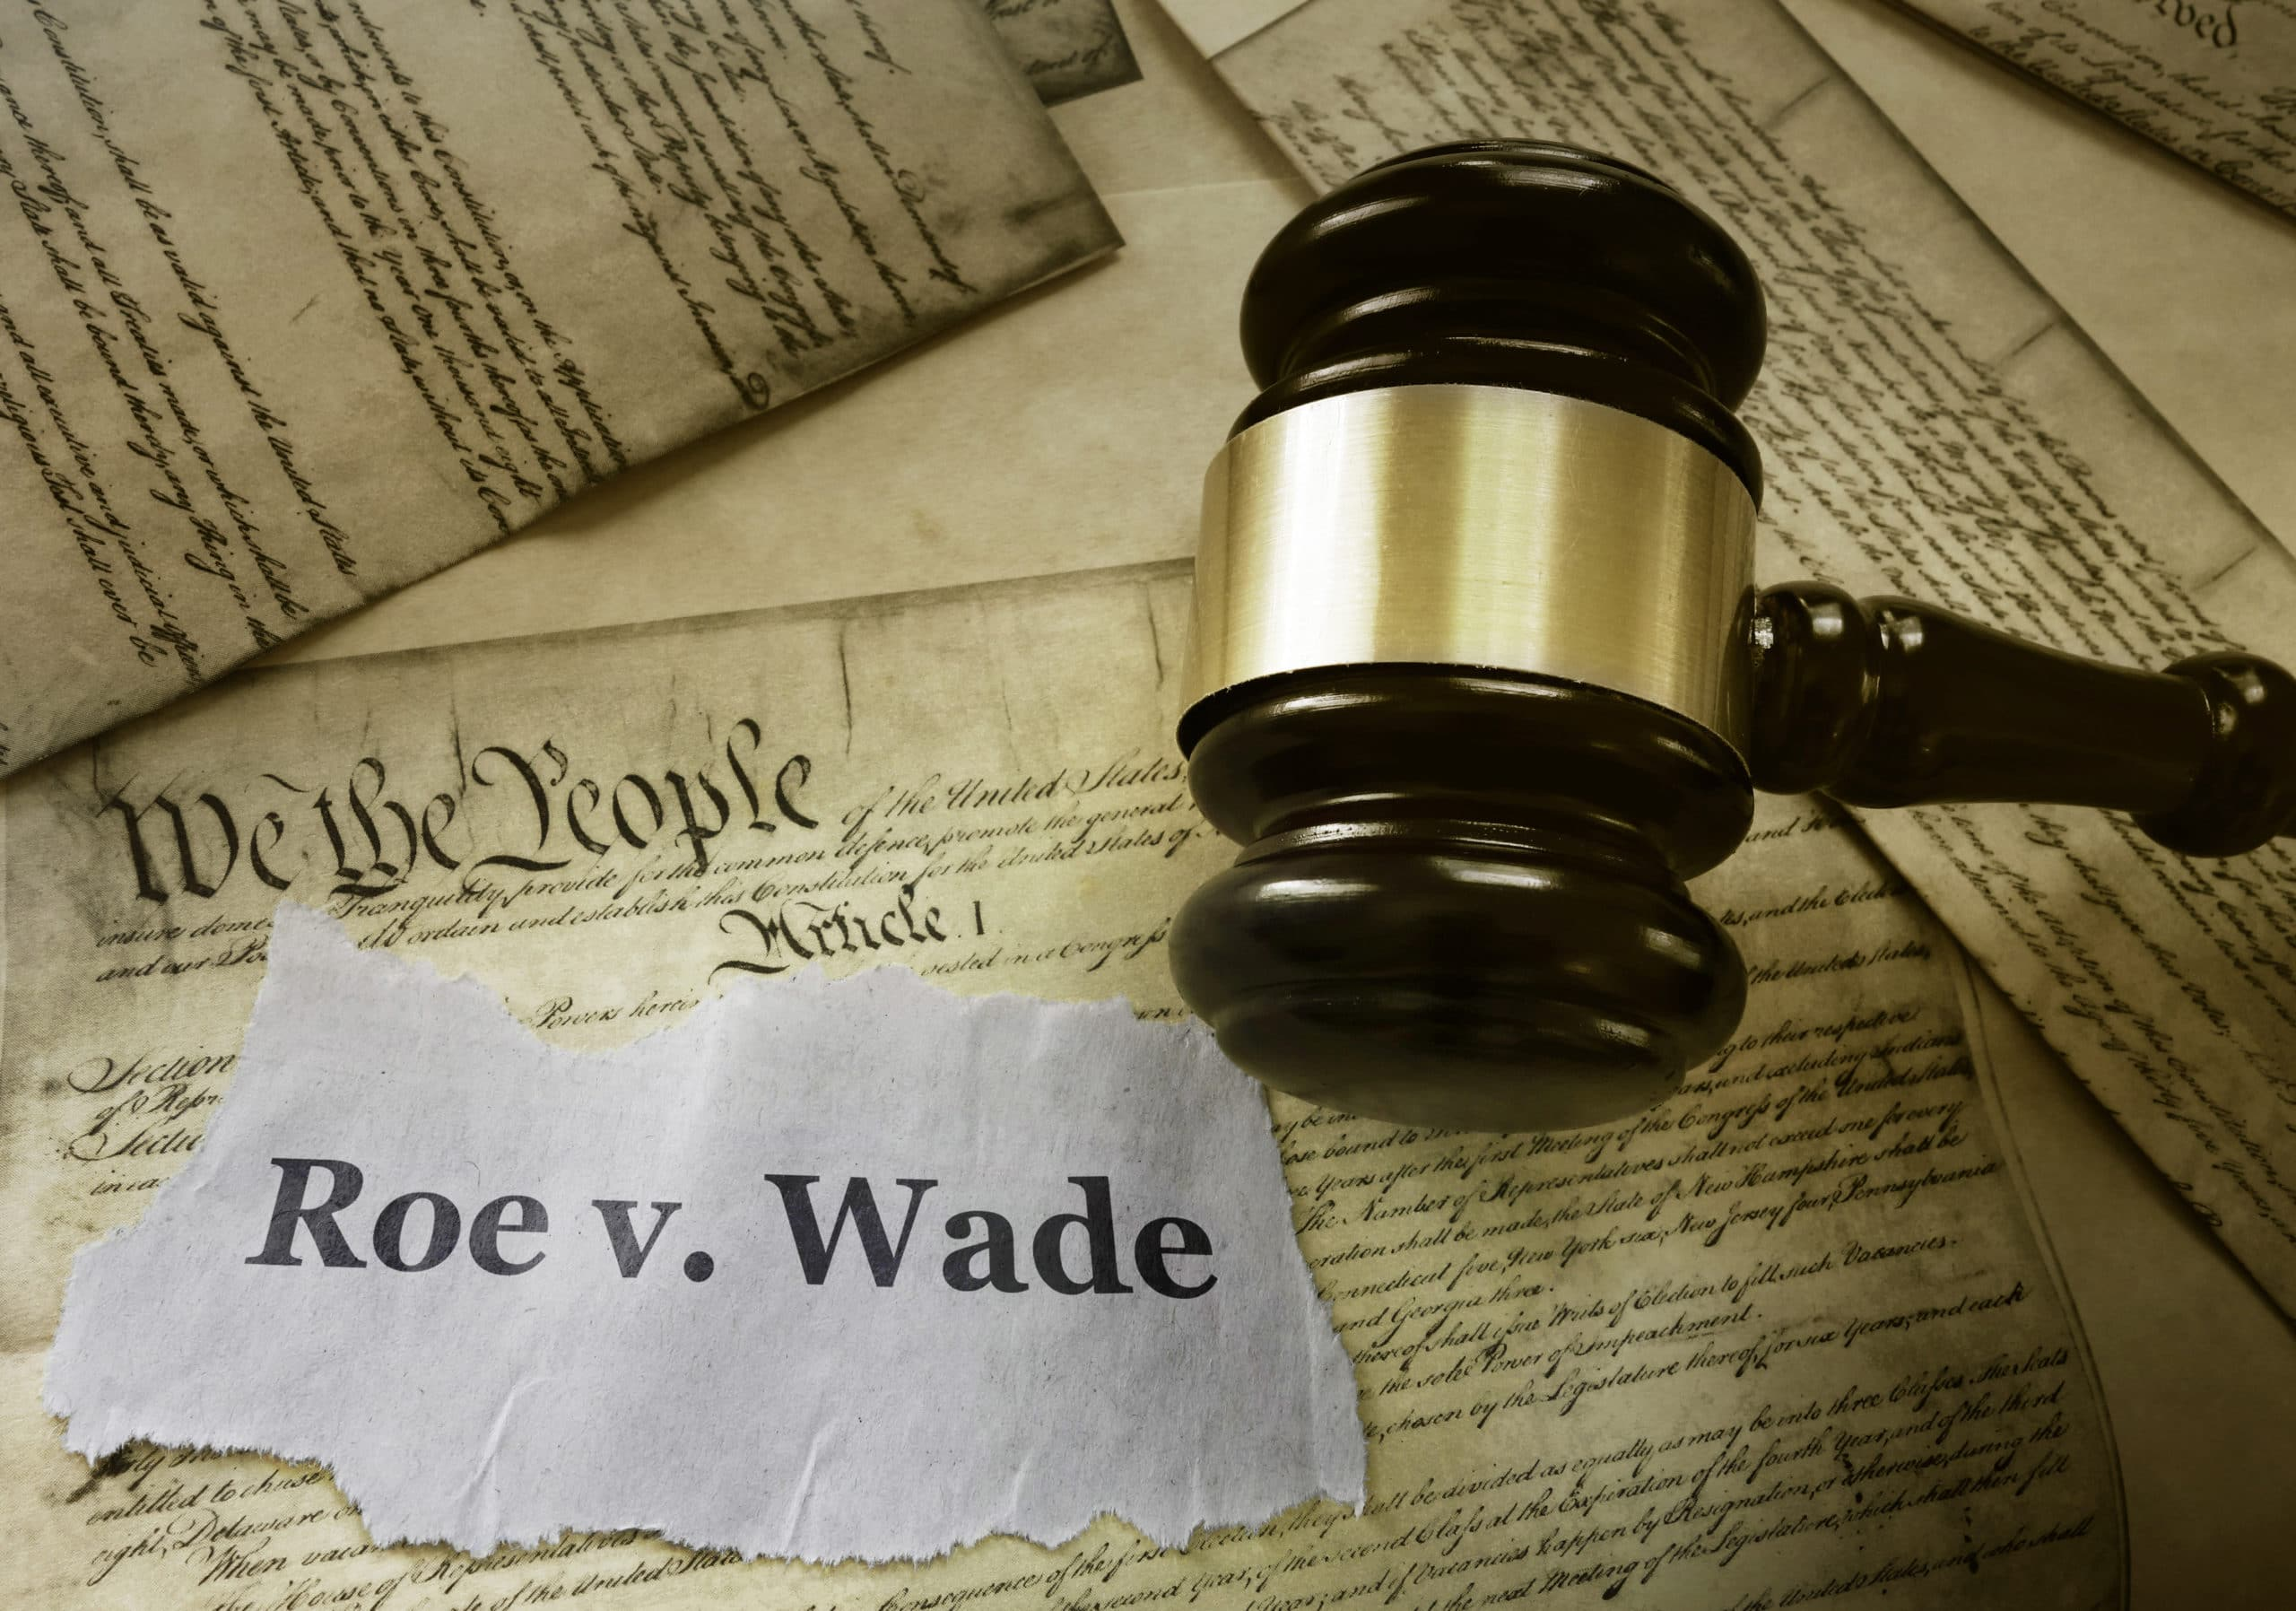 Roe v Wade news headline with gavel on a copy of the United States Constitution legalization of abortion